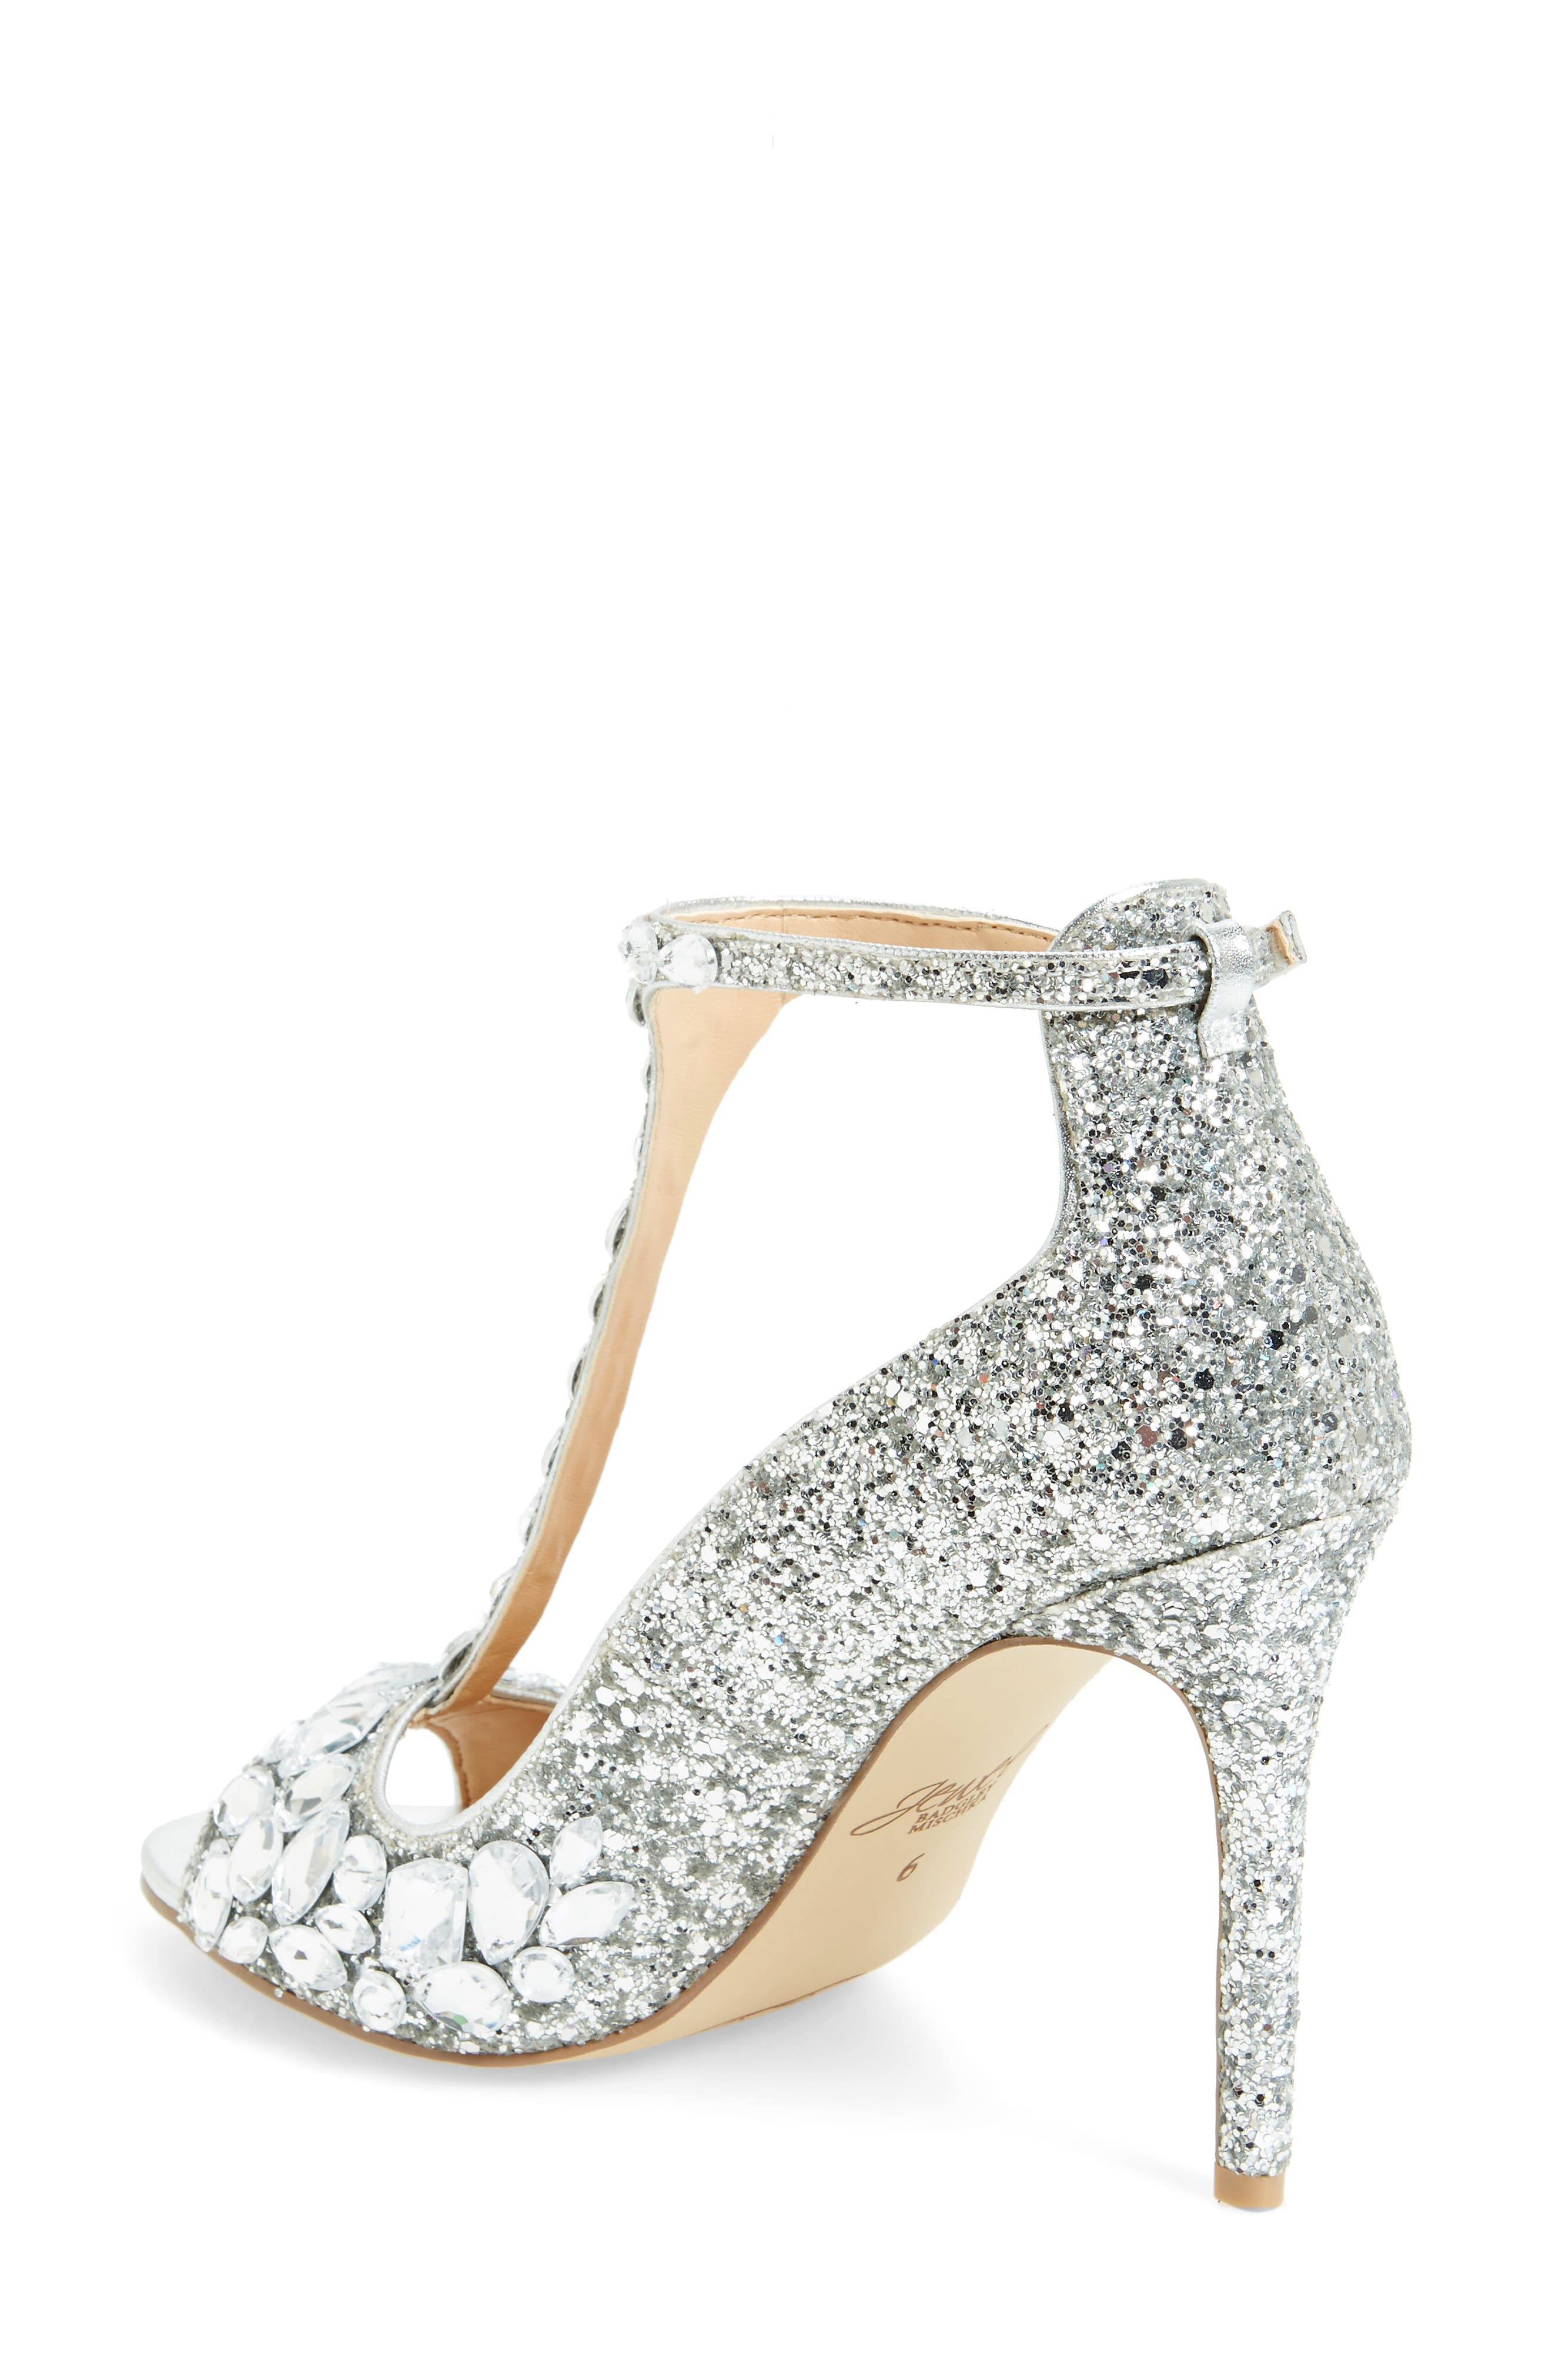 Conroy Embellished T-Strap Pump,                             Alternate thumbnail 2, color,                             SILVER